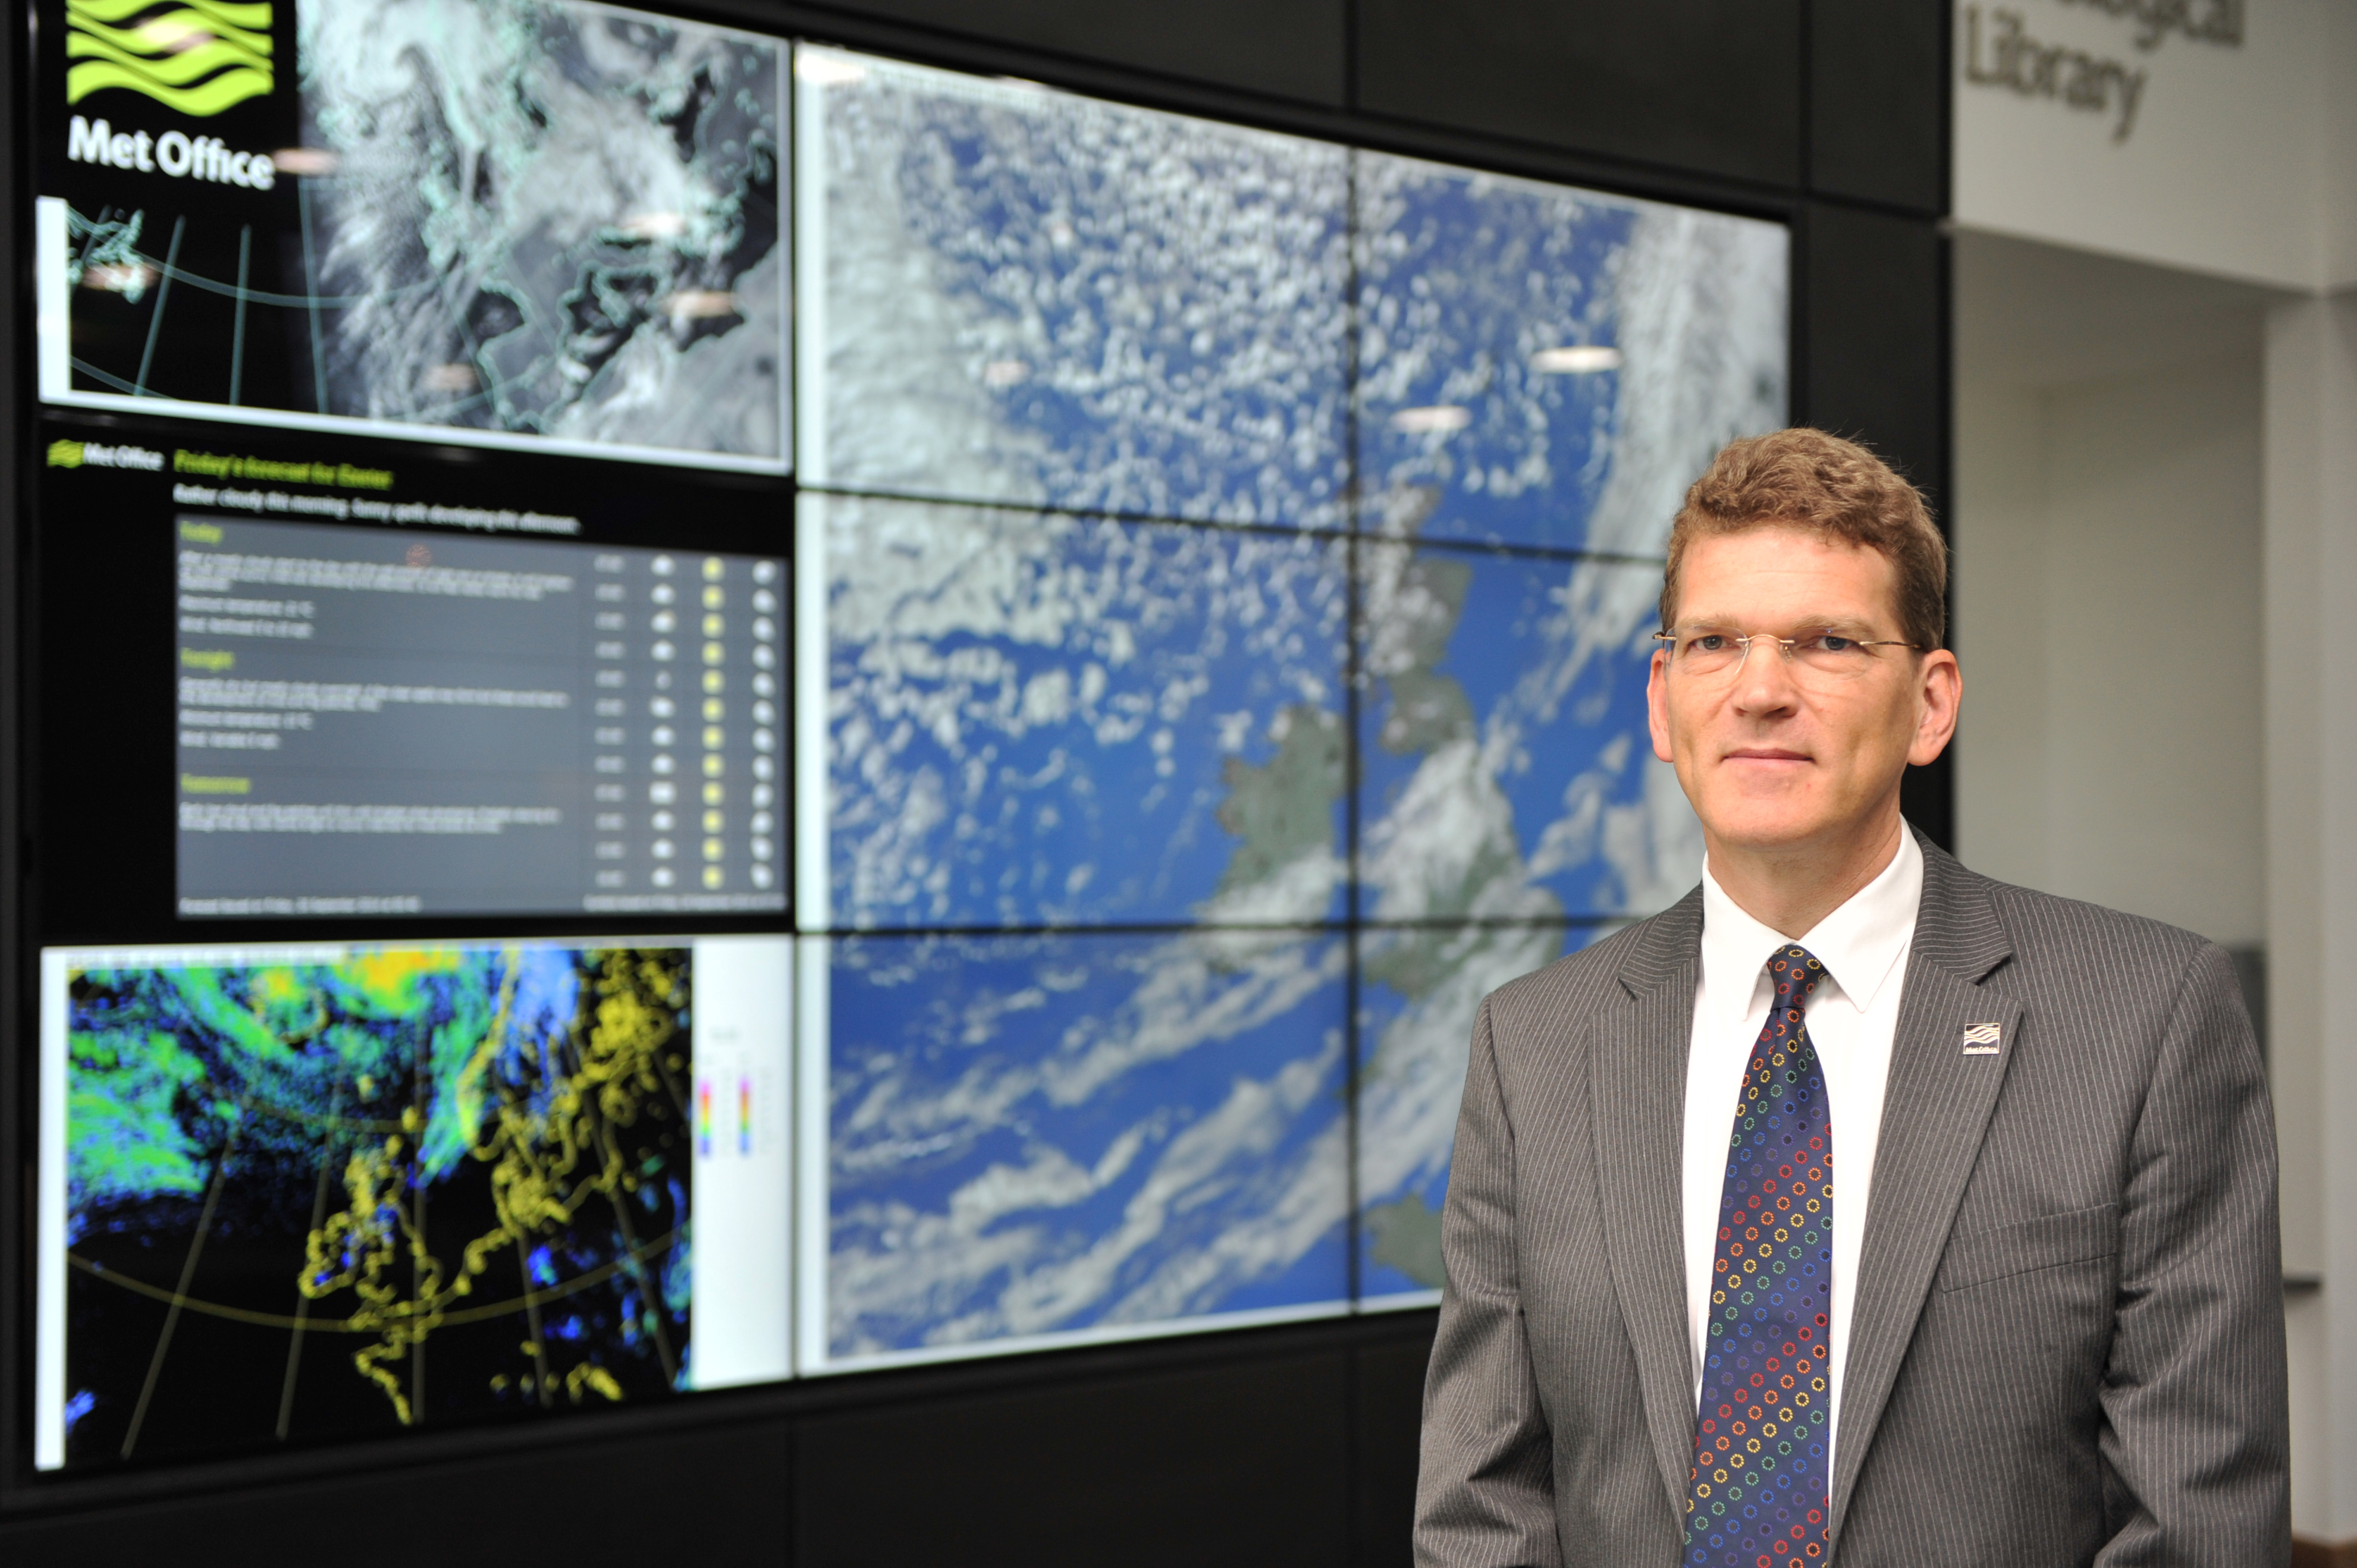 Robert Varley, First Vice-President of WMO